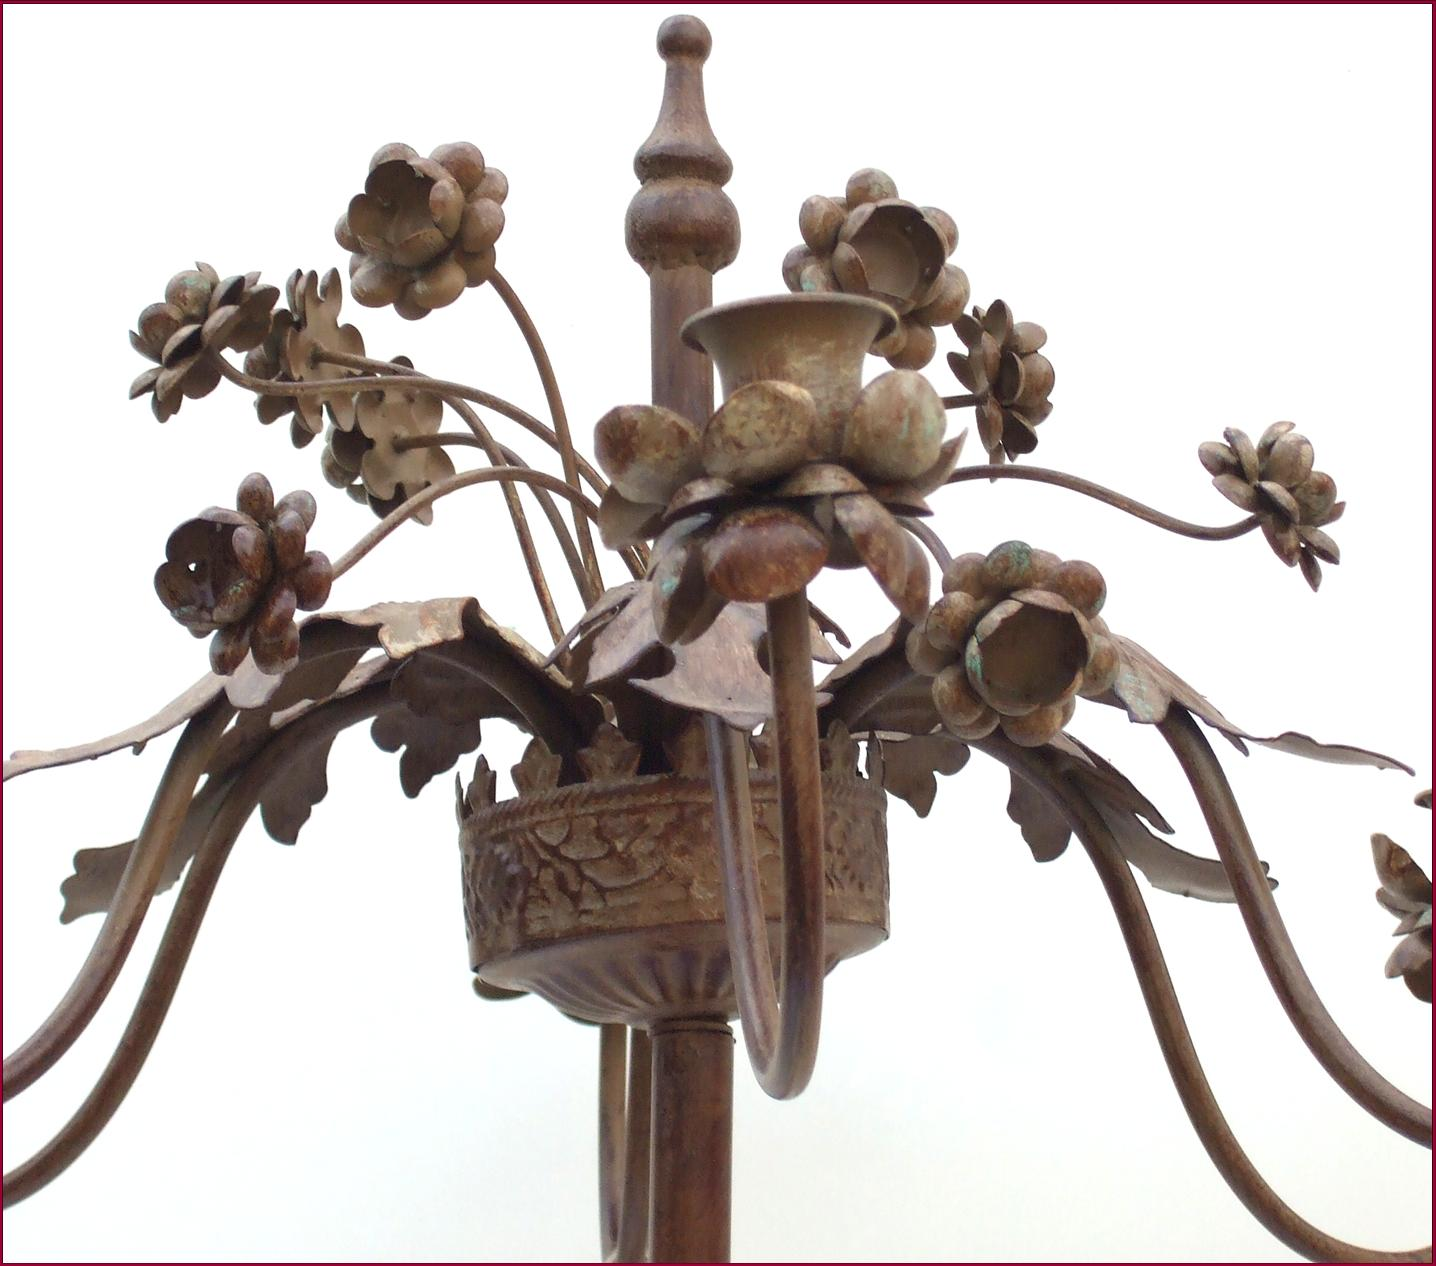 grand bougeoir chandelier candelabre haut sur pied a bougie en fer lampe lustre ebay. Black Bedroom Furniture Sets. Home Design Ideas